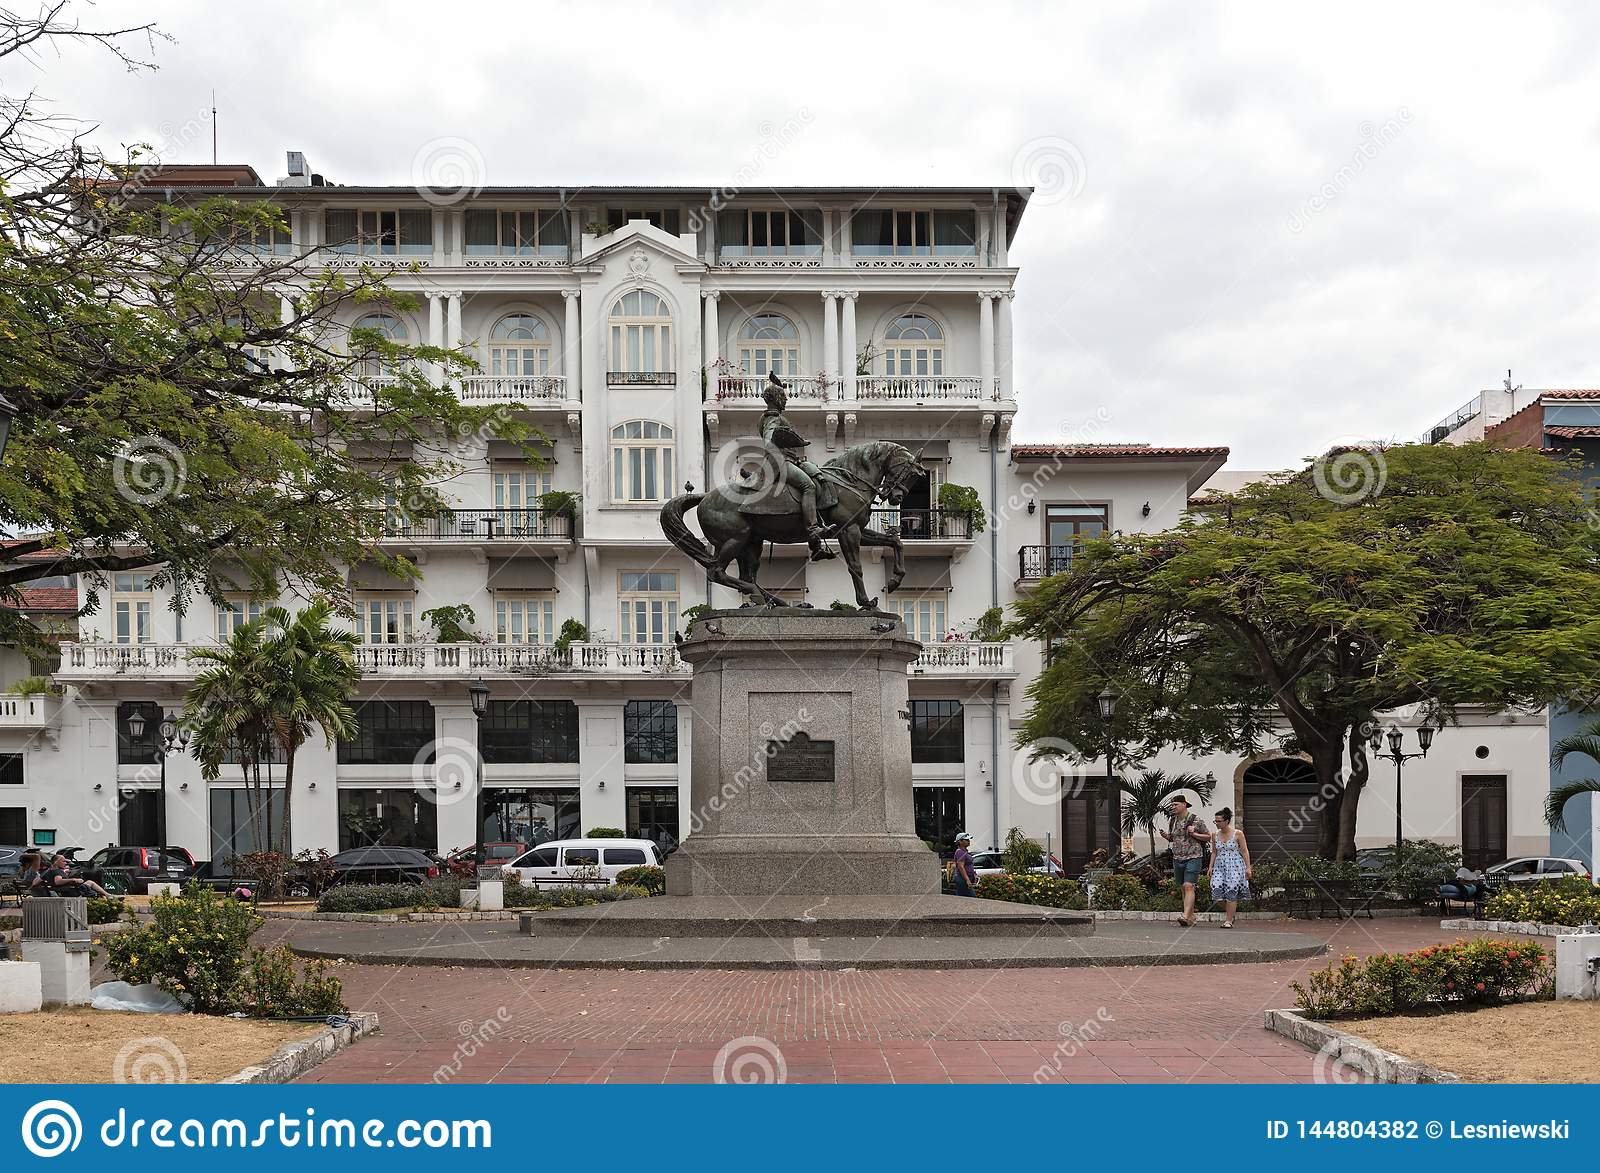 Statue of general tomas herrera on the square of the same name in casco viejo panama city